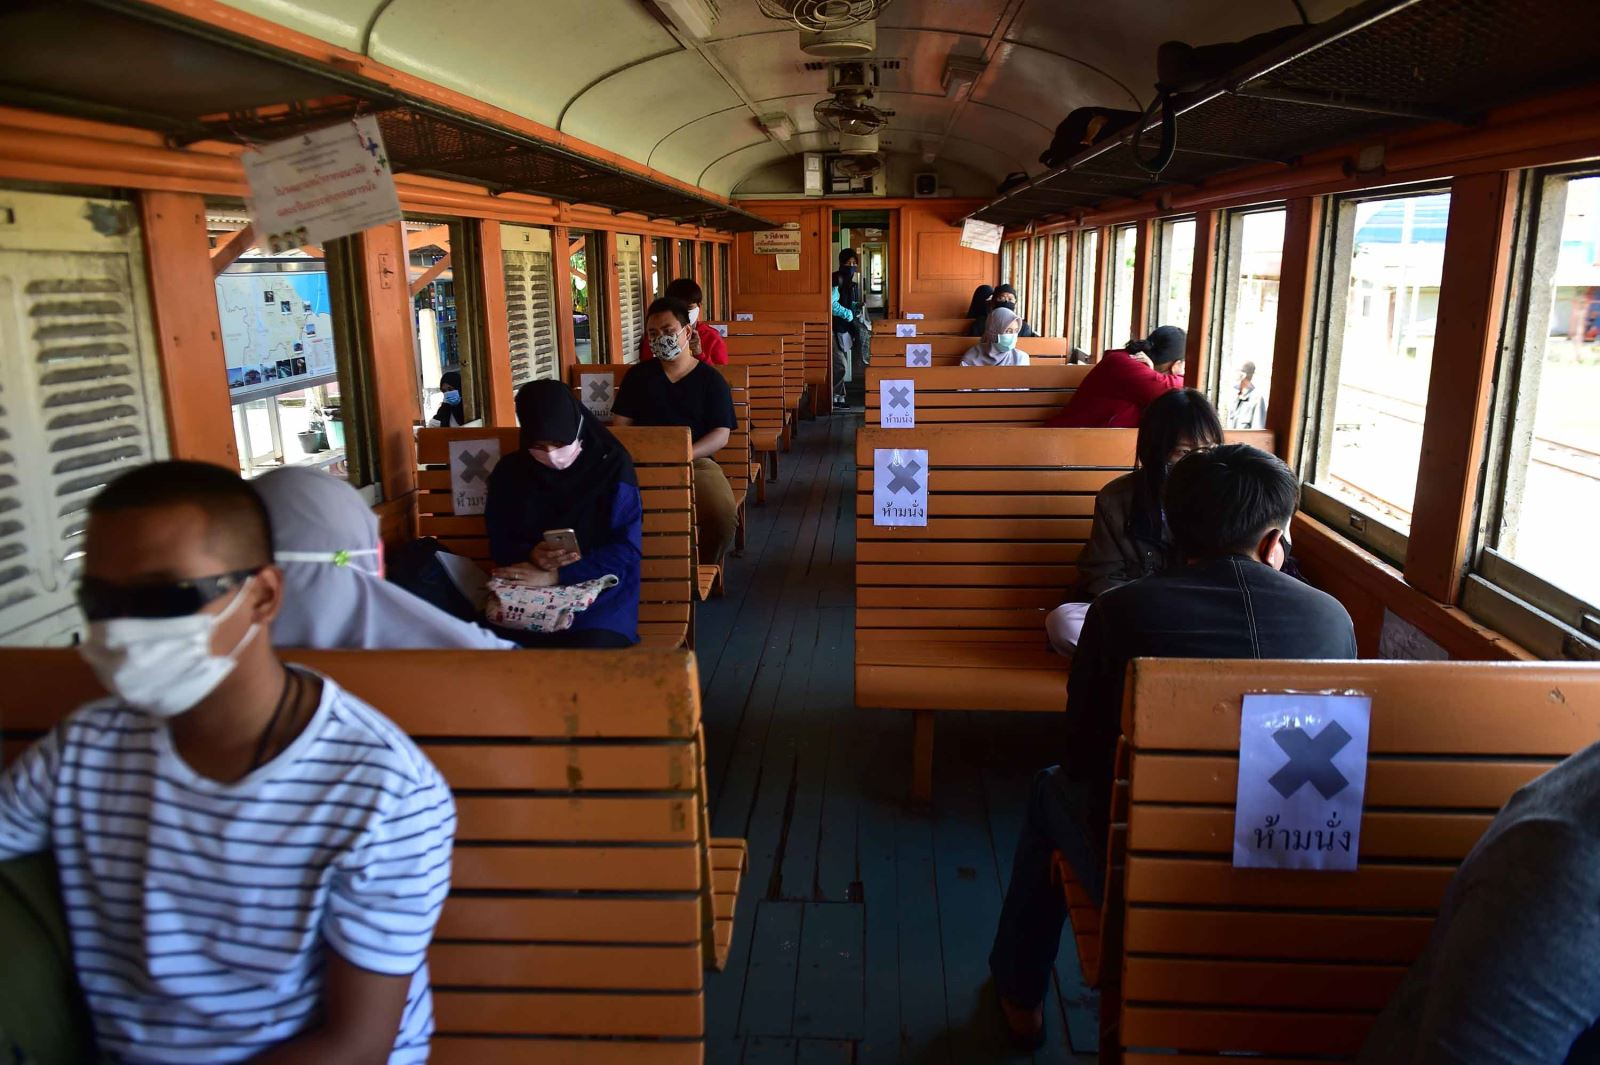 Passengers sit next to empty seats with social distancing signs on a train at Tanyong Mat railway station in the southern Thai province of Narathiwat, on June 11, following the lifting of coronavirus travel restrictions. Madaree Tohlala/AFP/Getty Images